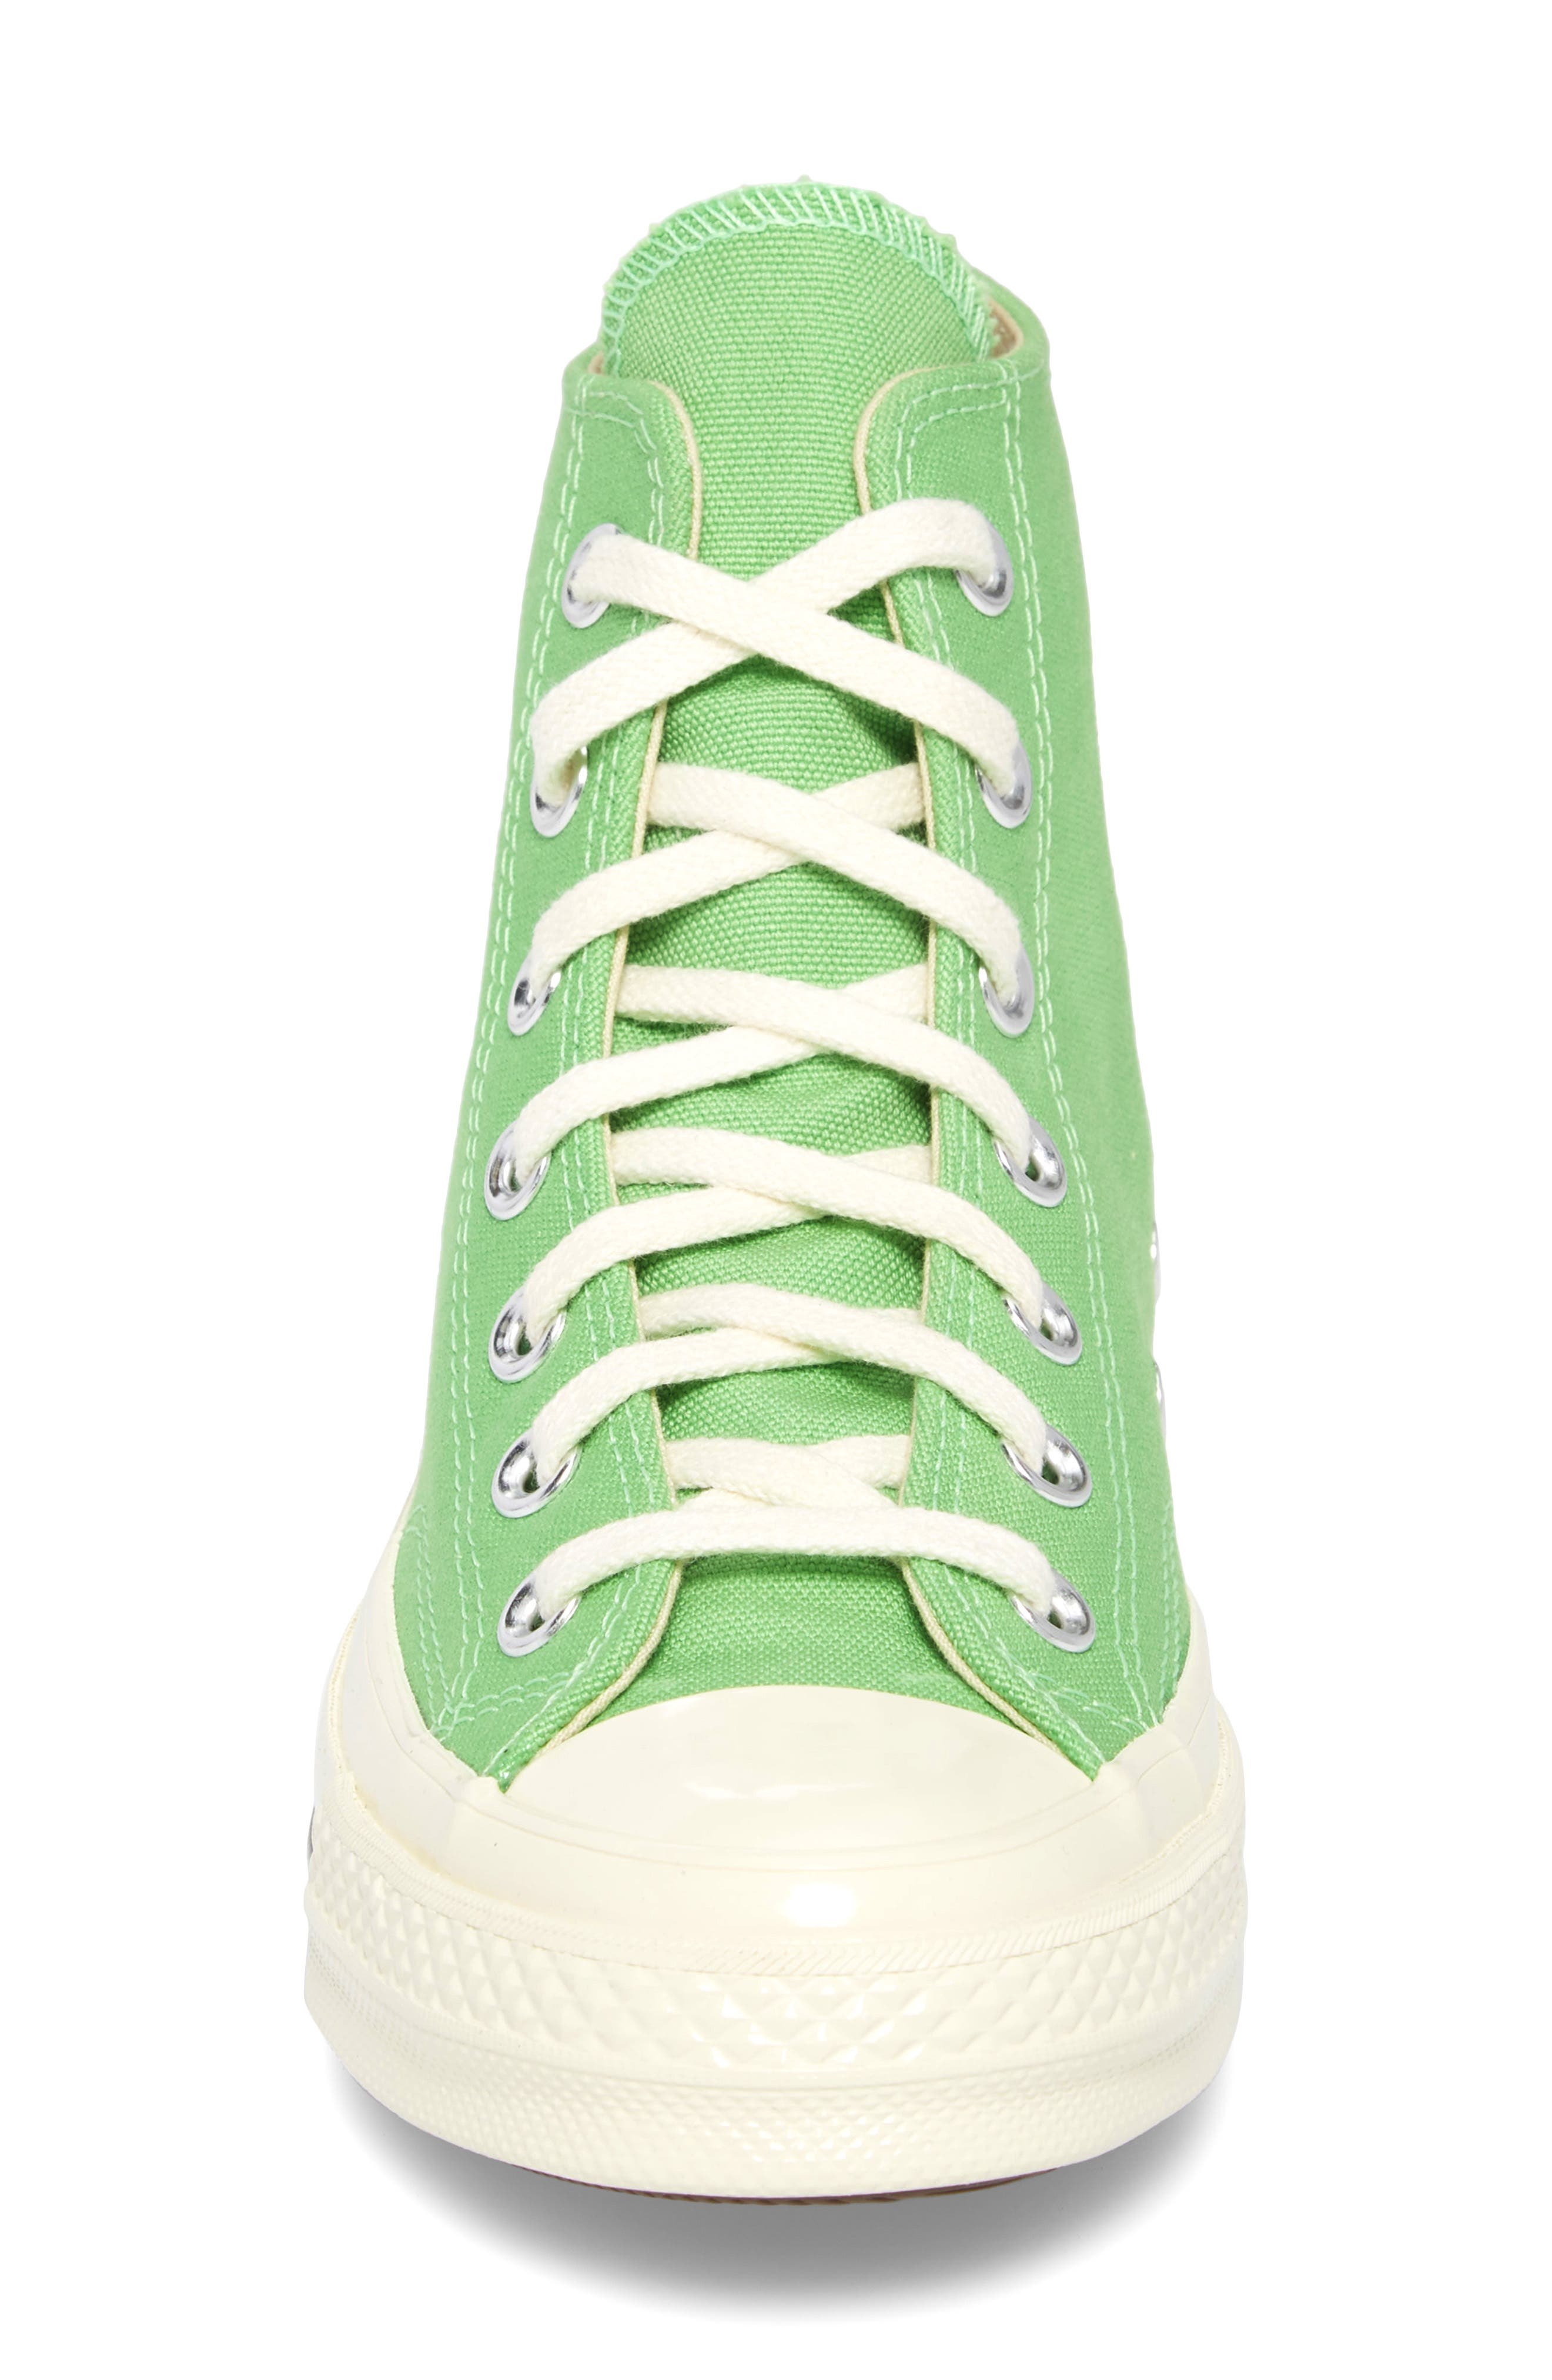 Chuck Taylor<sup>®</sup> All Star<sup>®</sup> 70 Brights High Top Sneaker,                             Alternate thumbnail 4, color,                             336